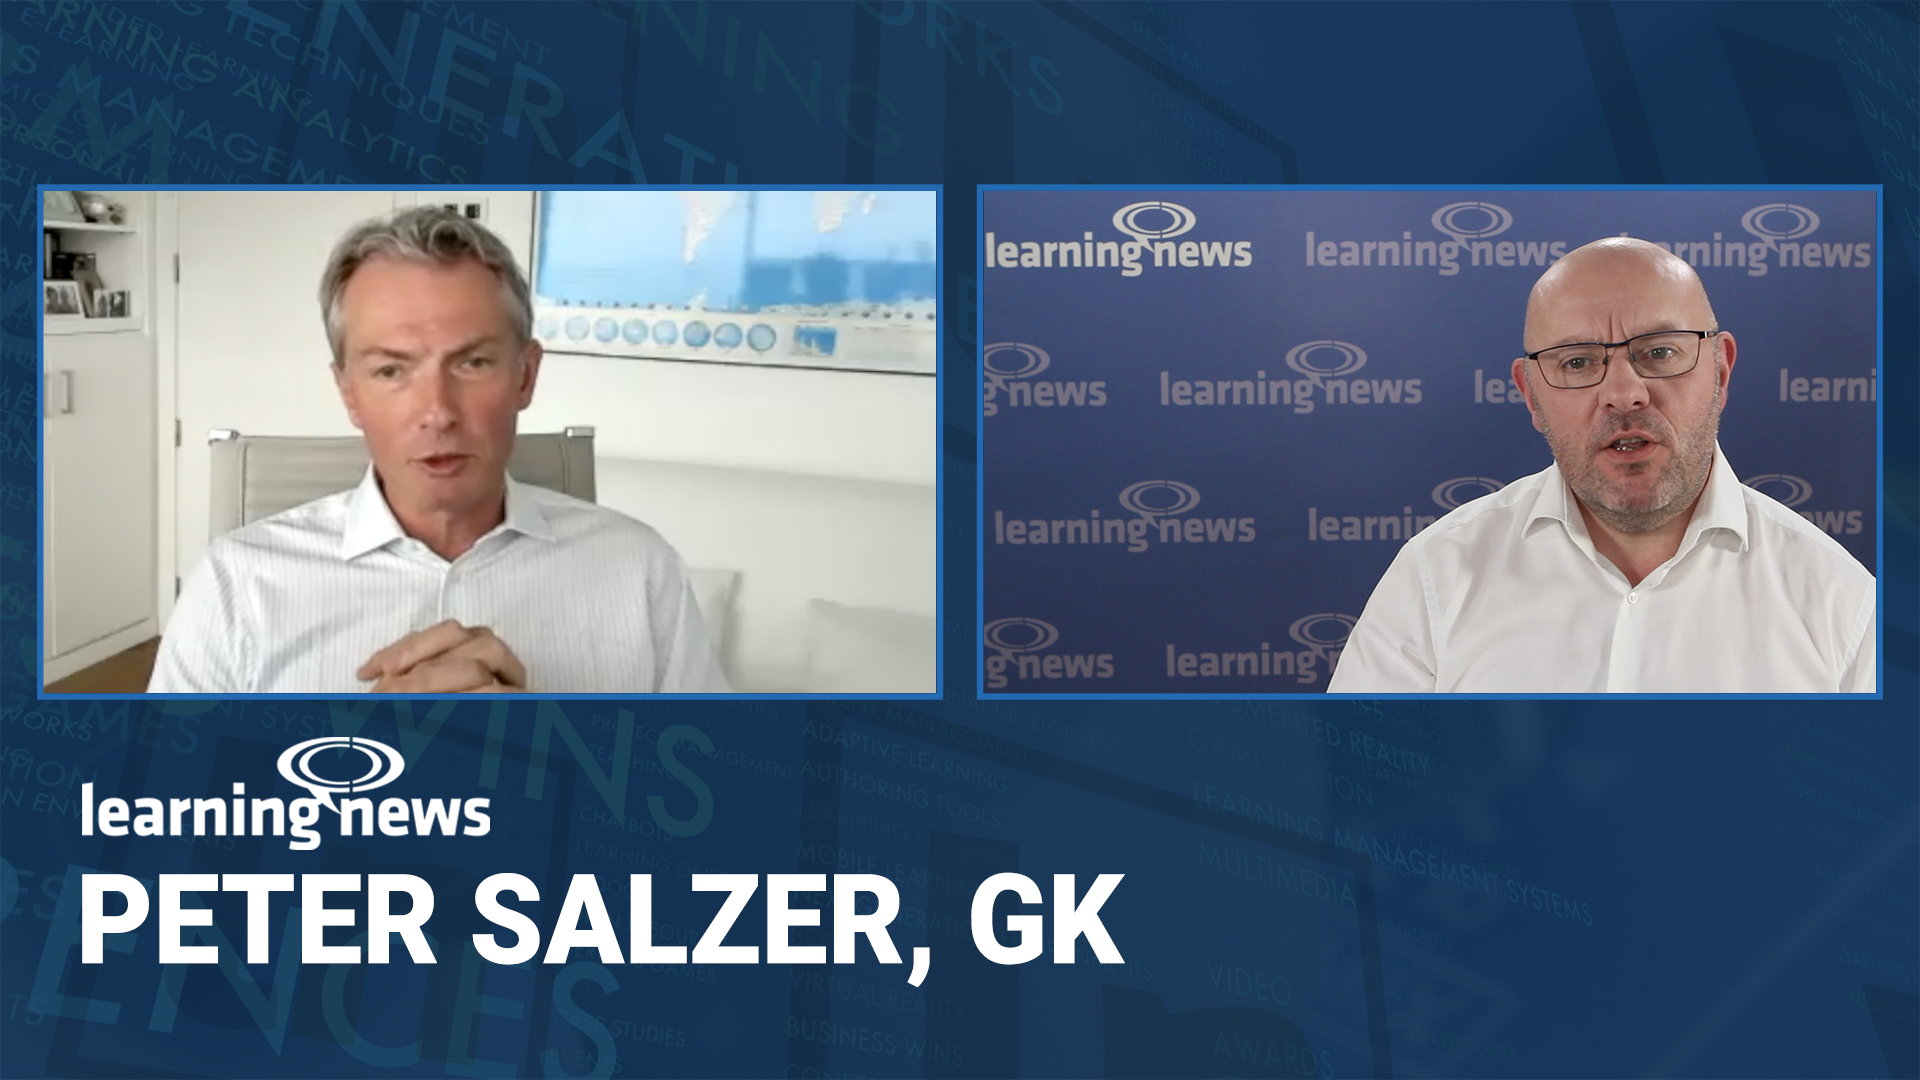 Peter Salzer, Global Knowledge, in discussion with Learning News